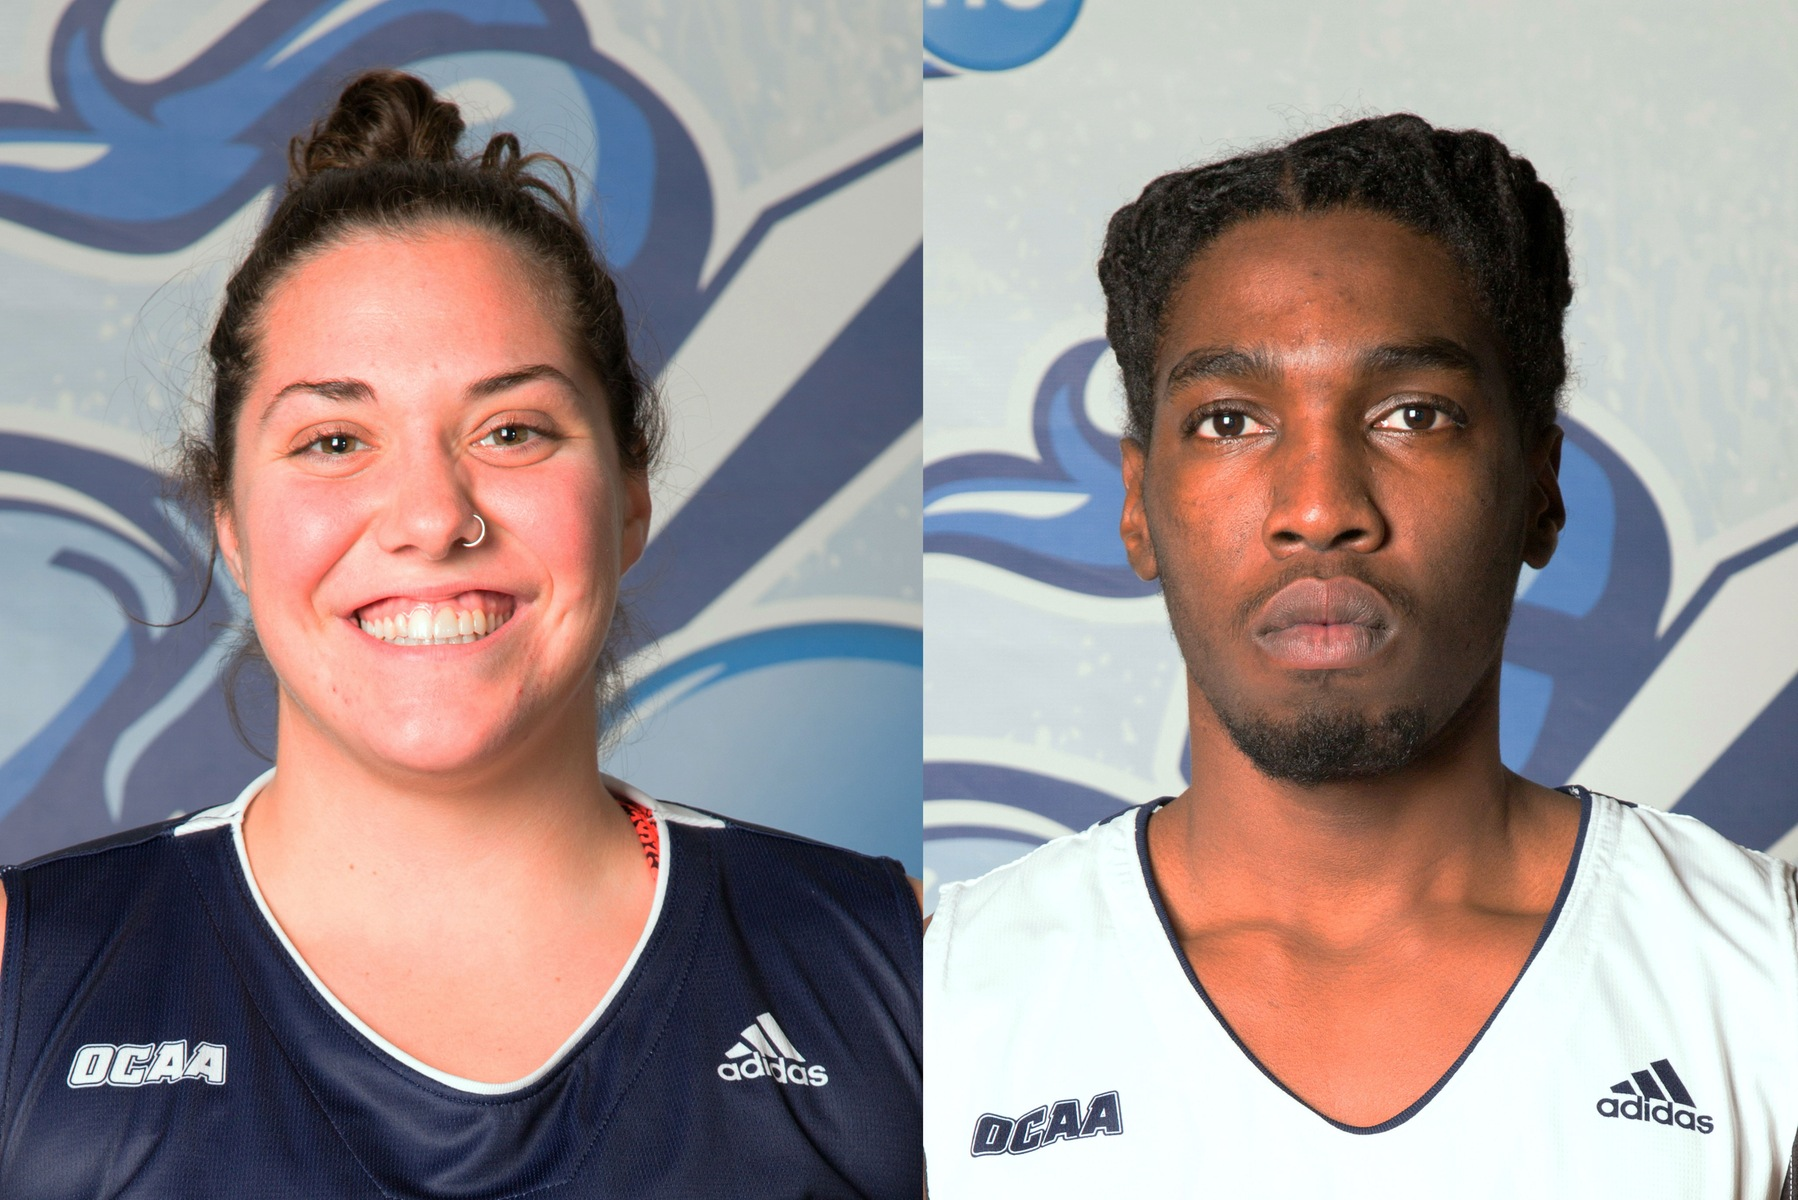 McPherson and Hutchinson Jr. Named Athletes of the Week